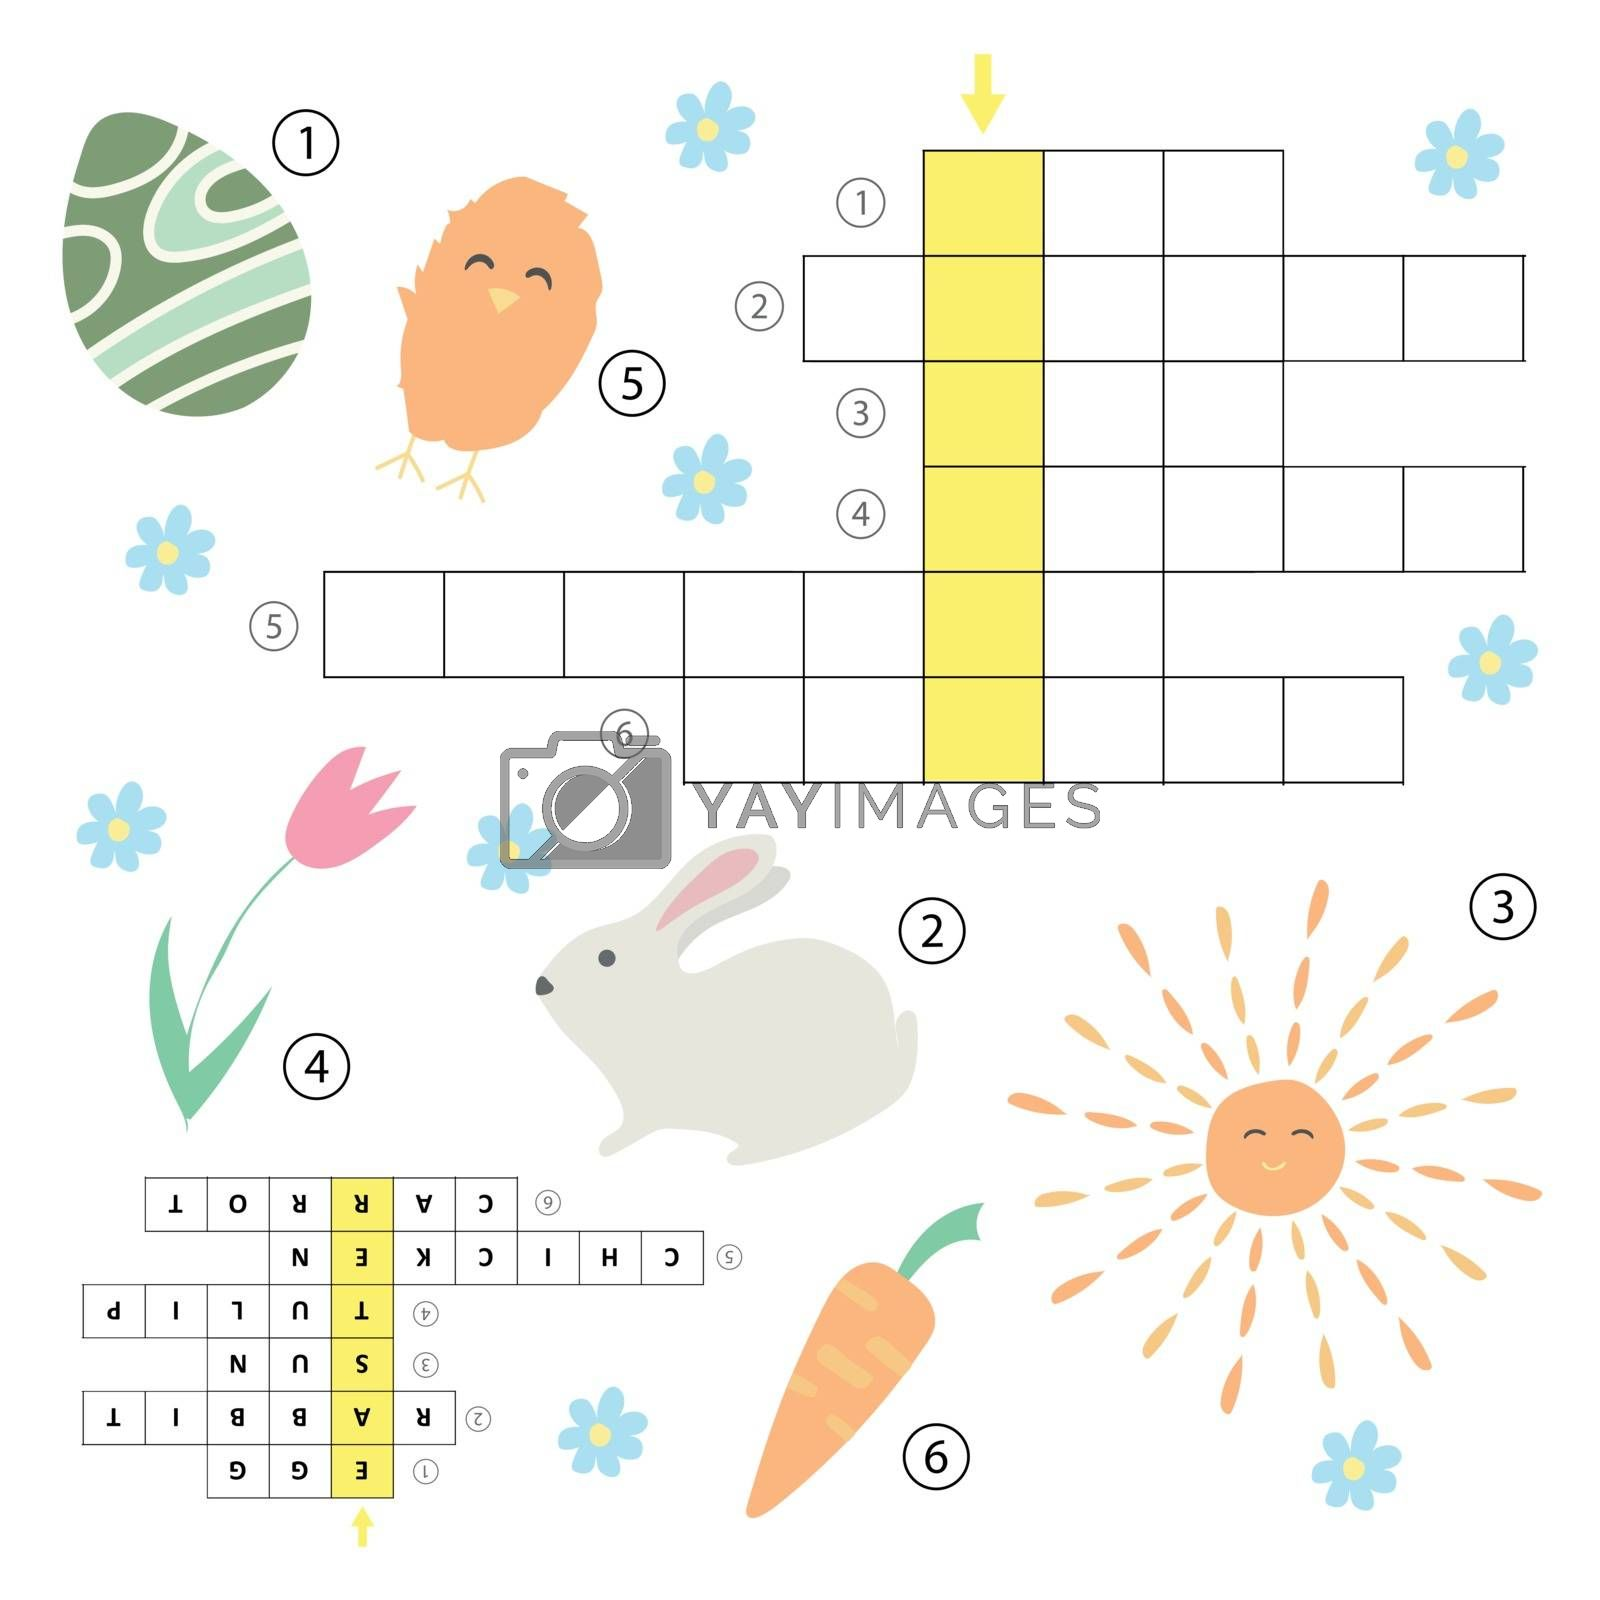 Crossword educational children game with answer. Learning vocabulary. Vector illustration. Easter theme puzzle